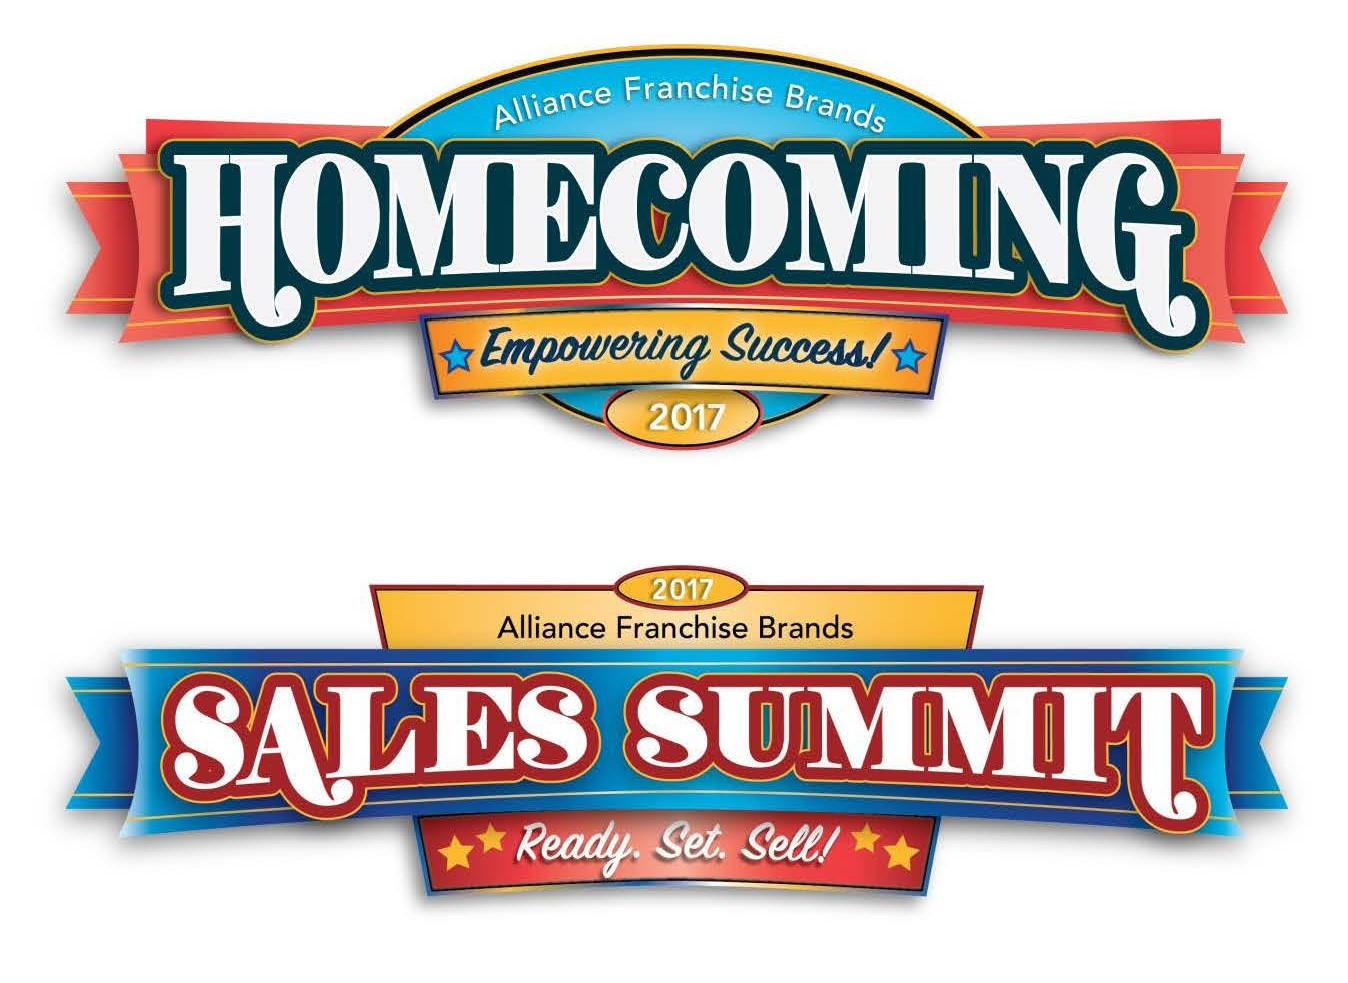 Vendor Registration for Homecoming & Sales Summit 2017